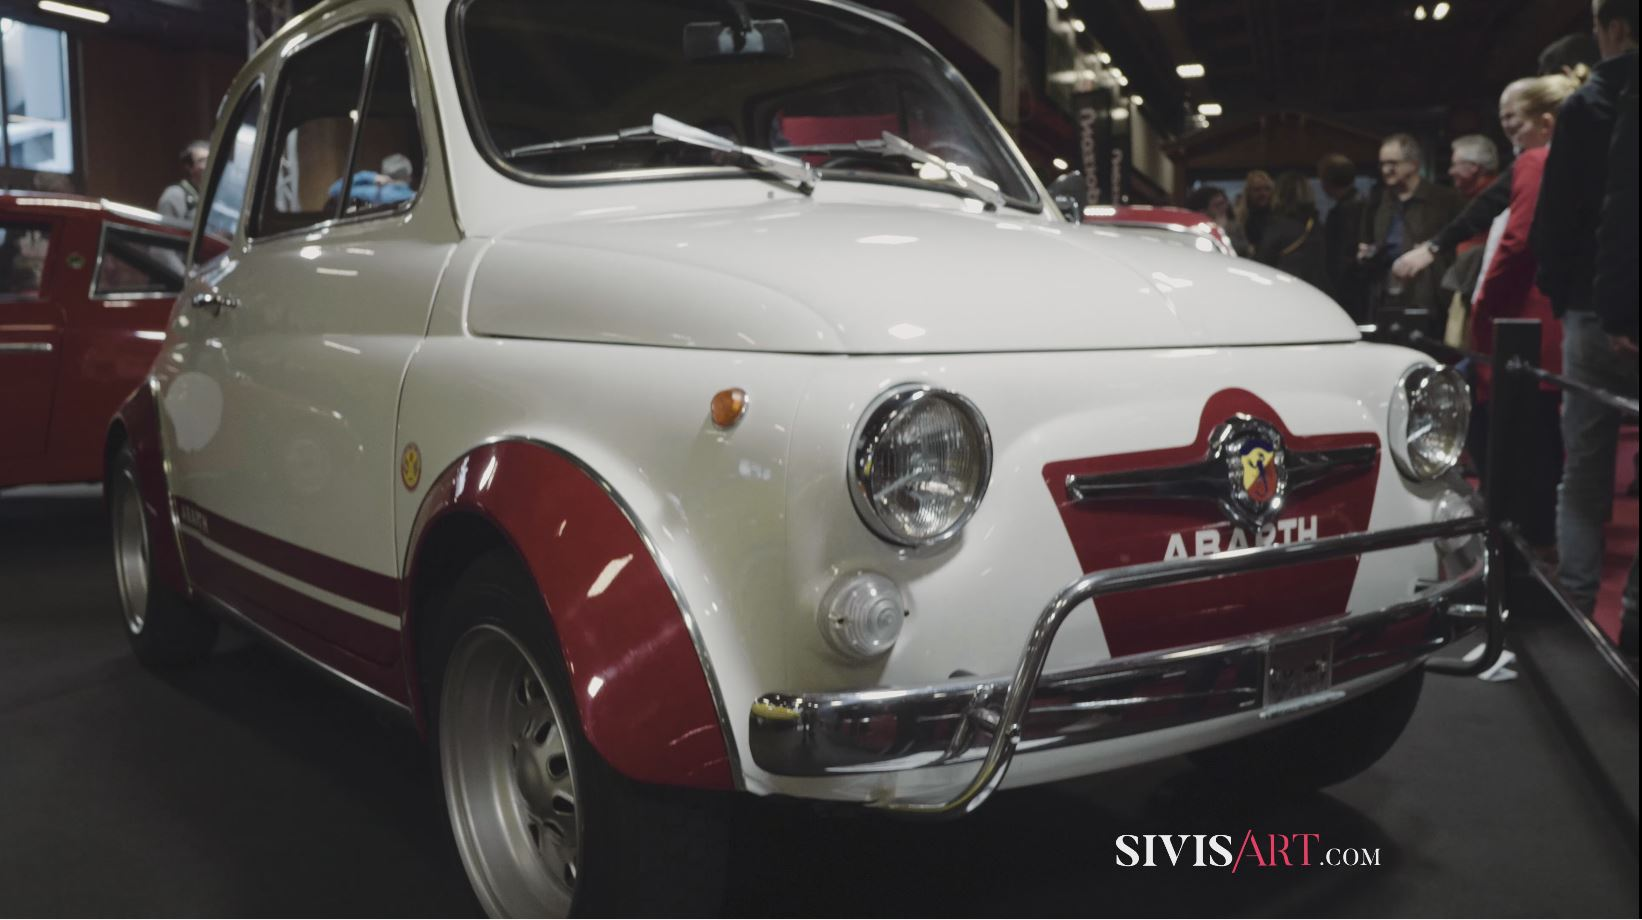 Sivis'art Videomaker presents RetroMobile-2018 – ABARTH – by Sivis'Art